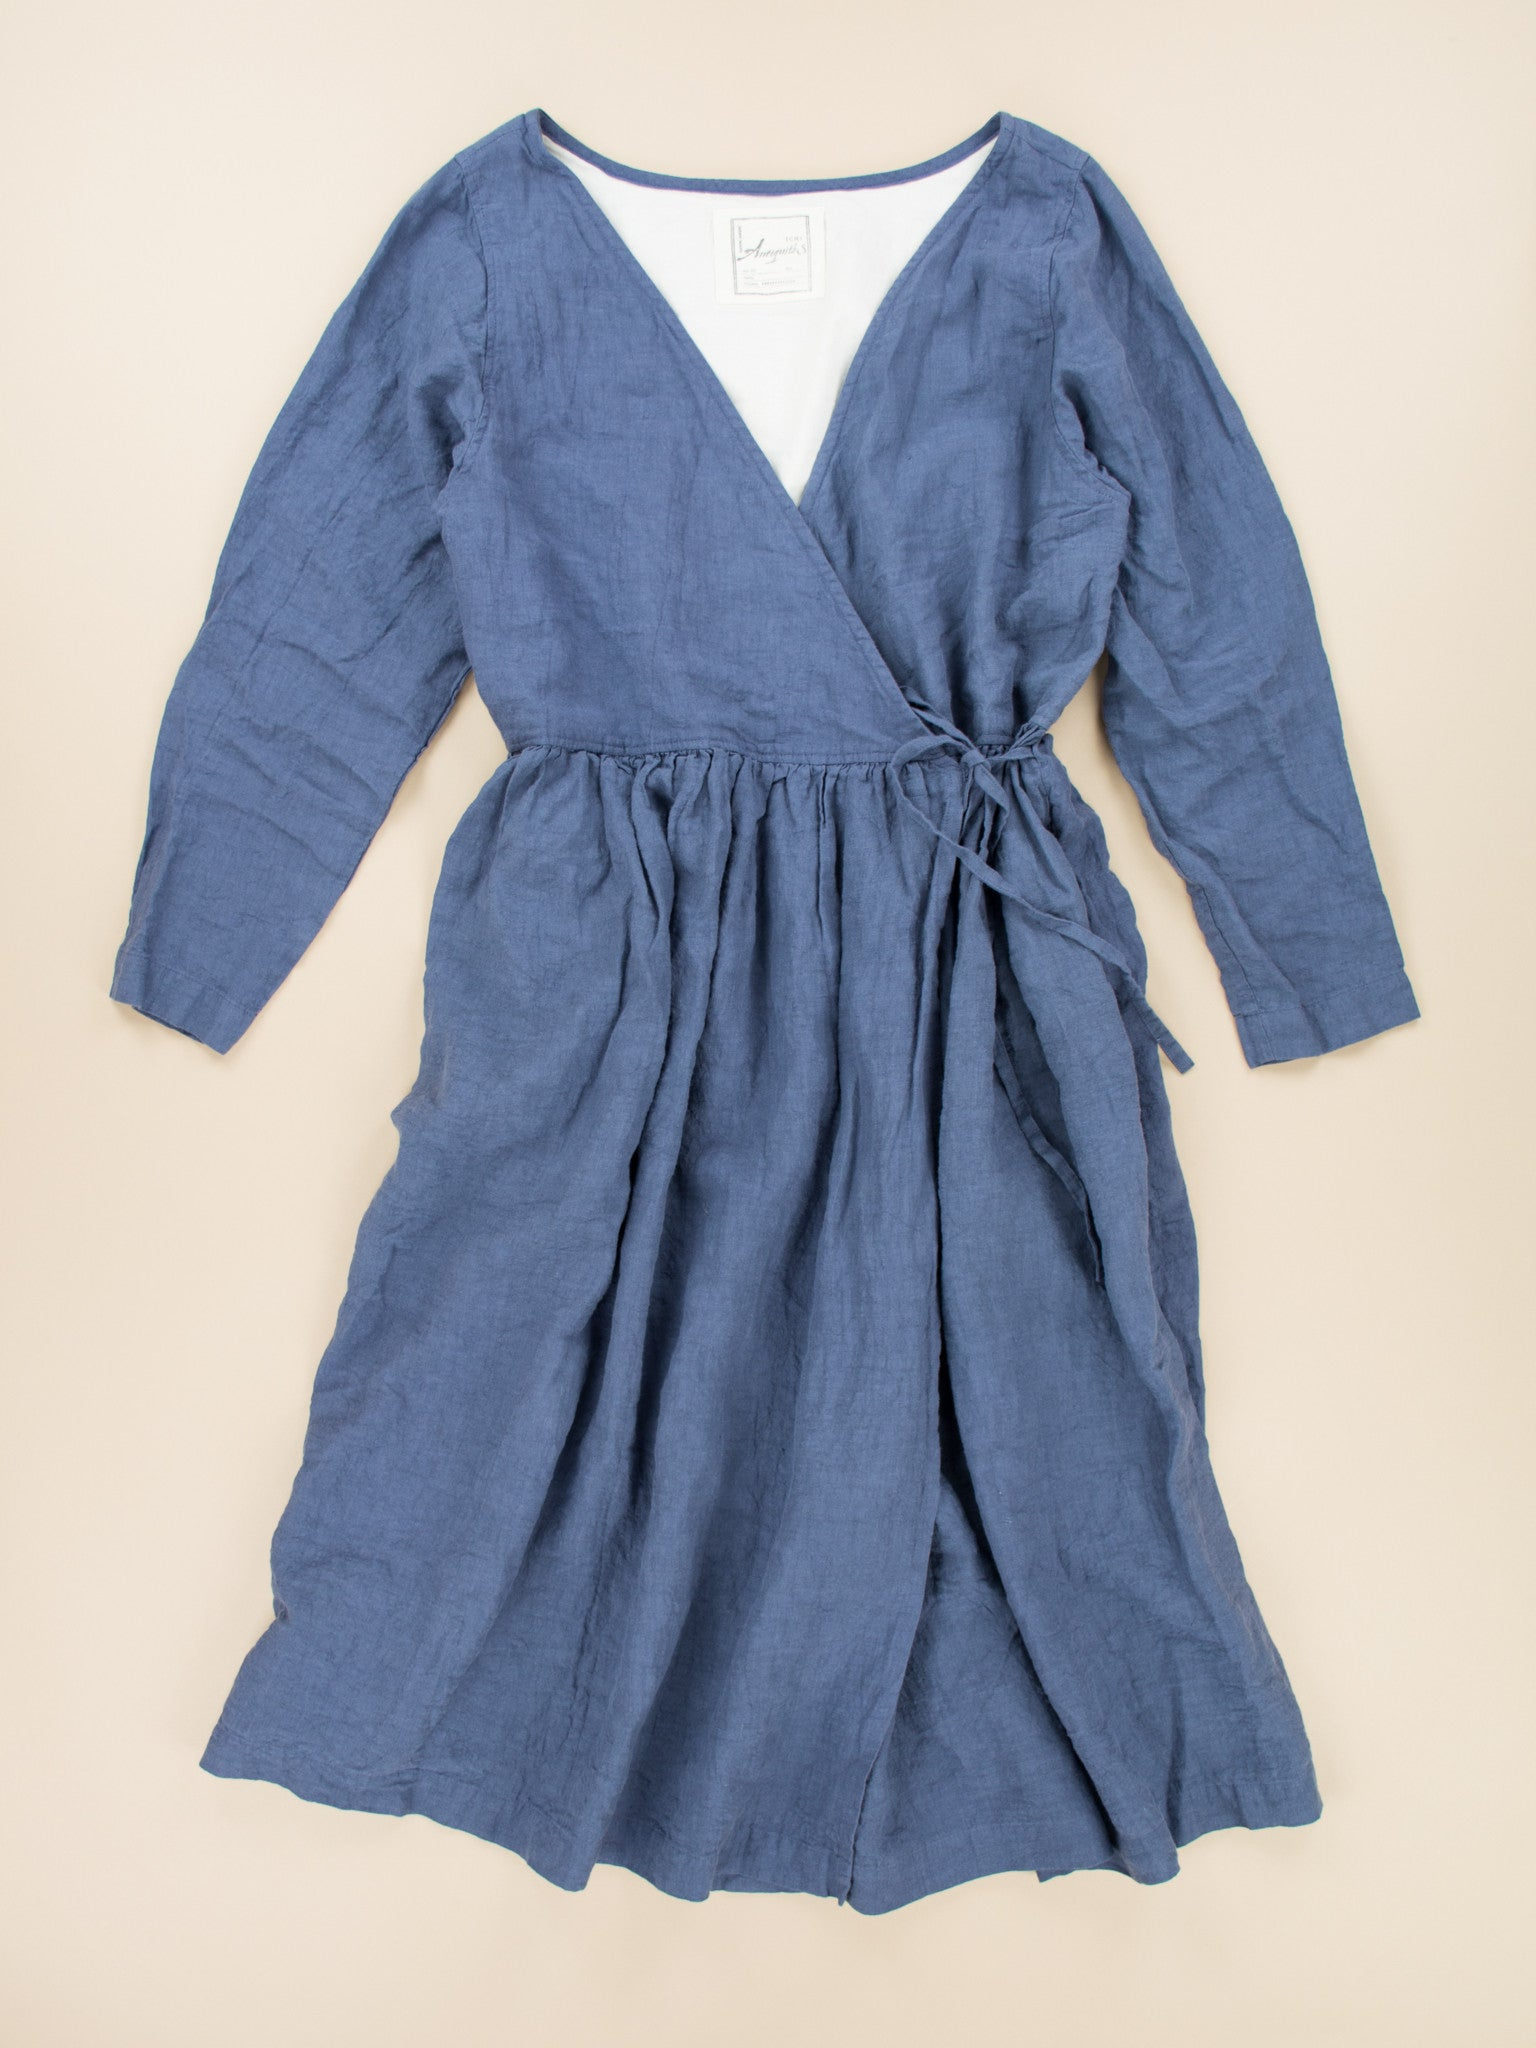 Namu Shop - Ichi Antiquites Linen Cache-Couer Dress